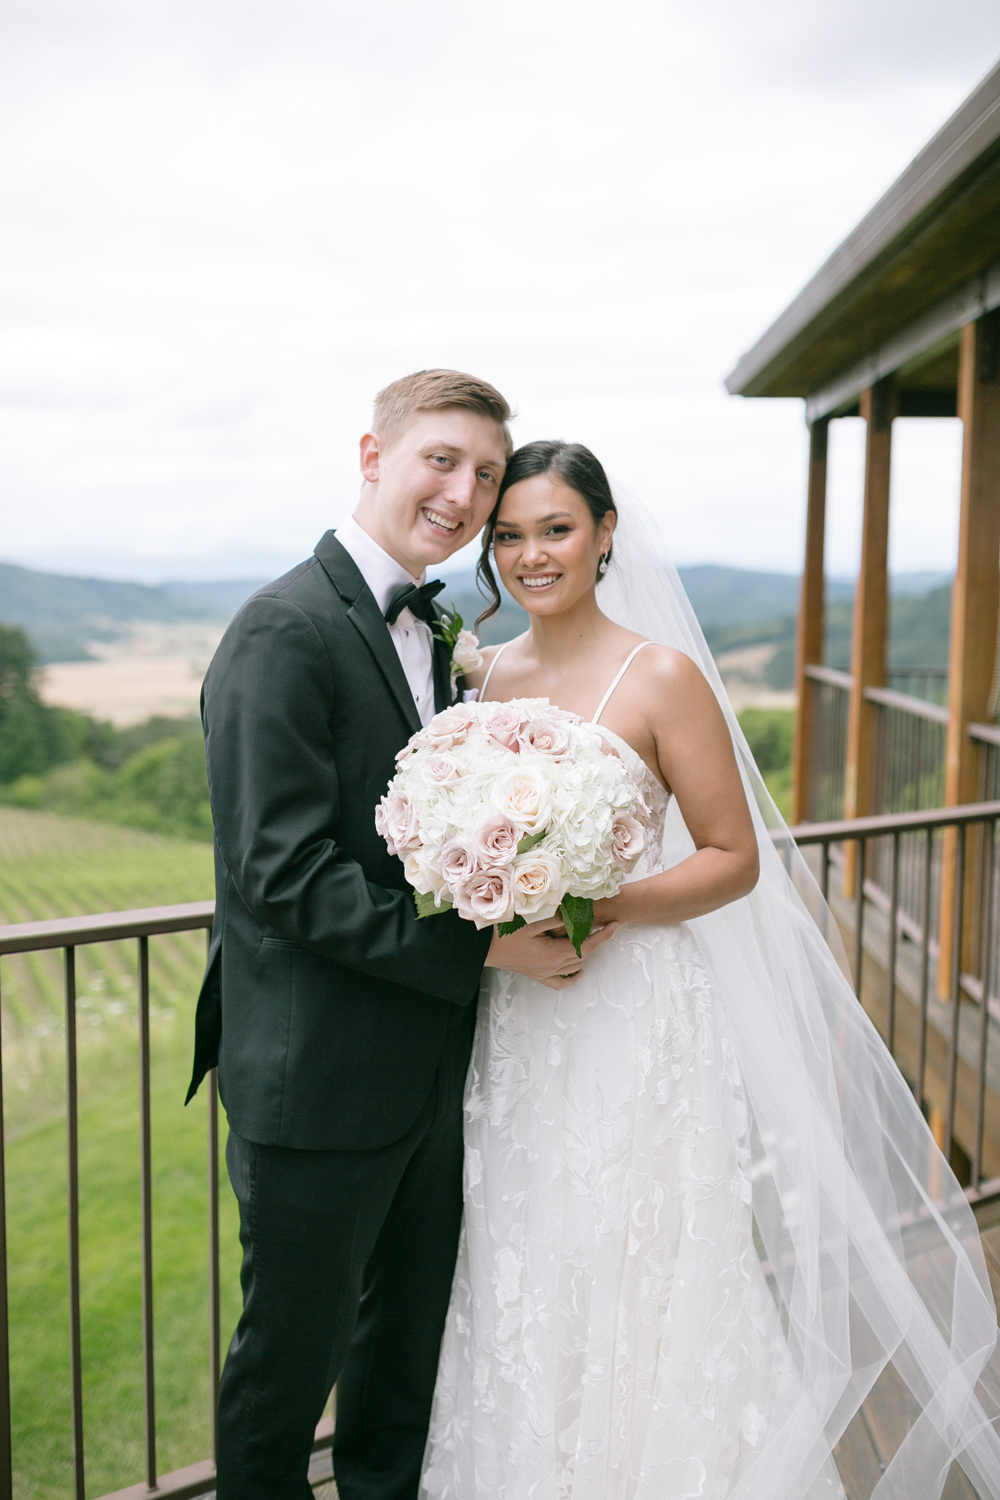 Youngberg Hill Vineyard Wedding in Wine Country Oregon - Corrie Mick Photography-178.jpg